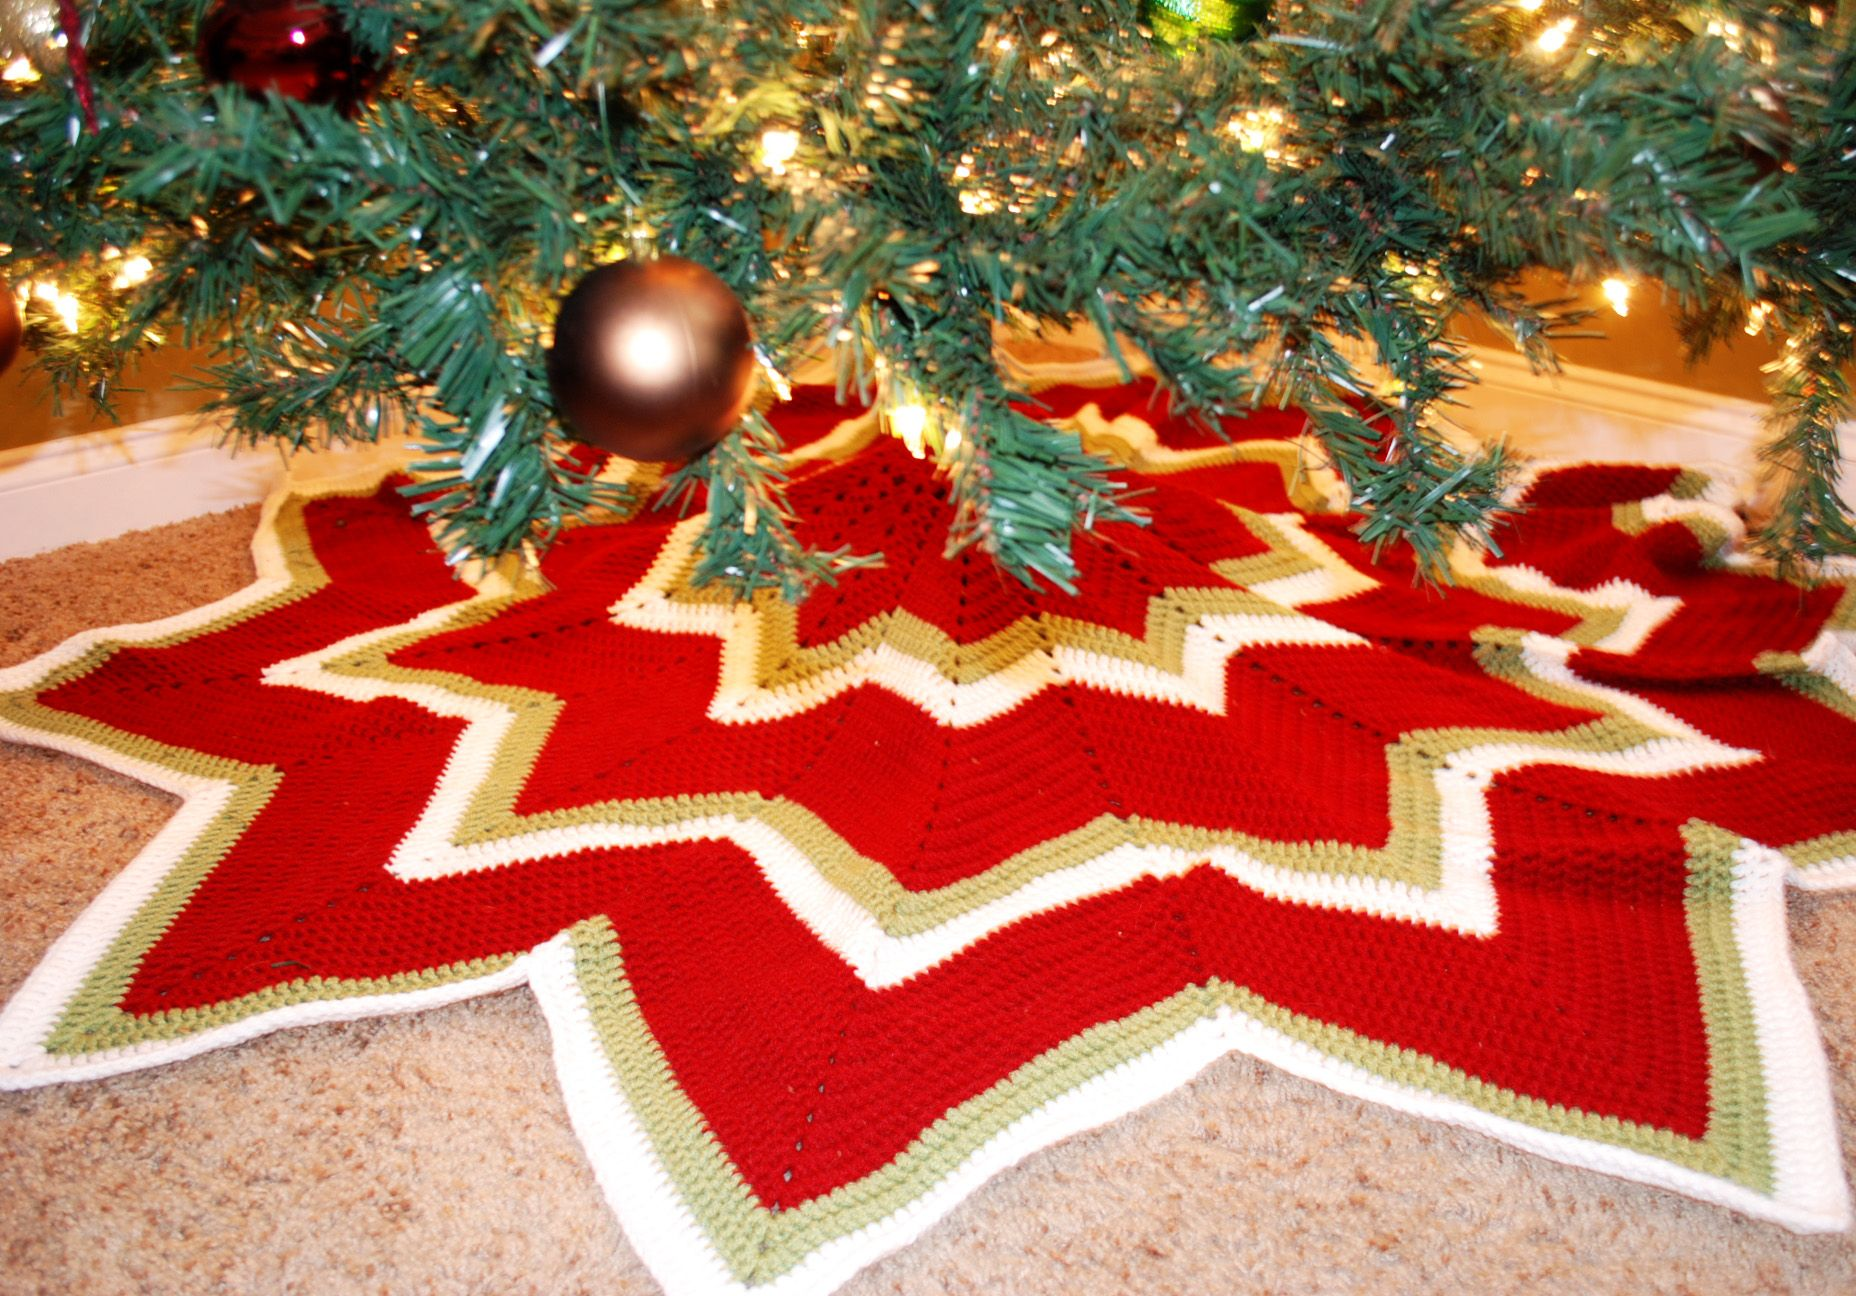 Puff stitch flowers tree skirts crochet and crochet christmas 12 pointed star tree skirt bankloansurffo Gallery